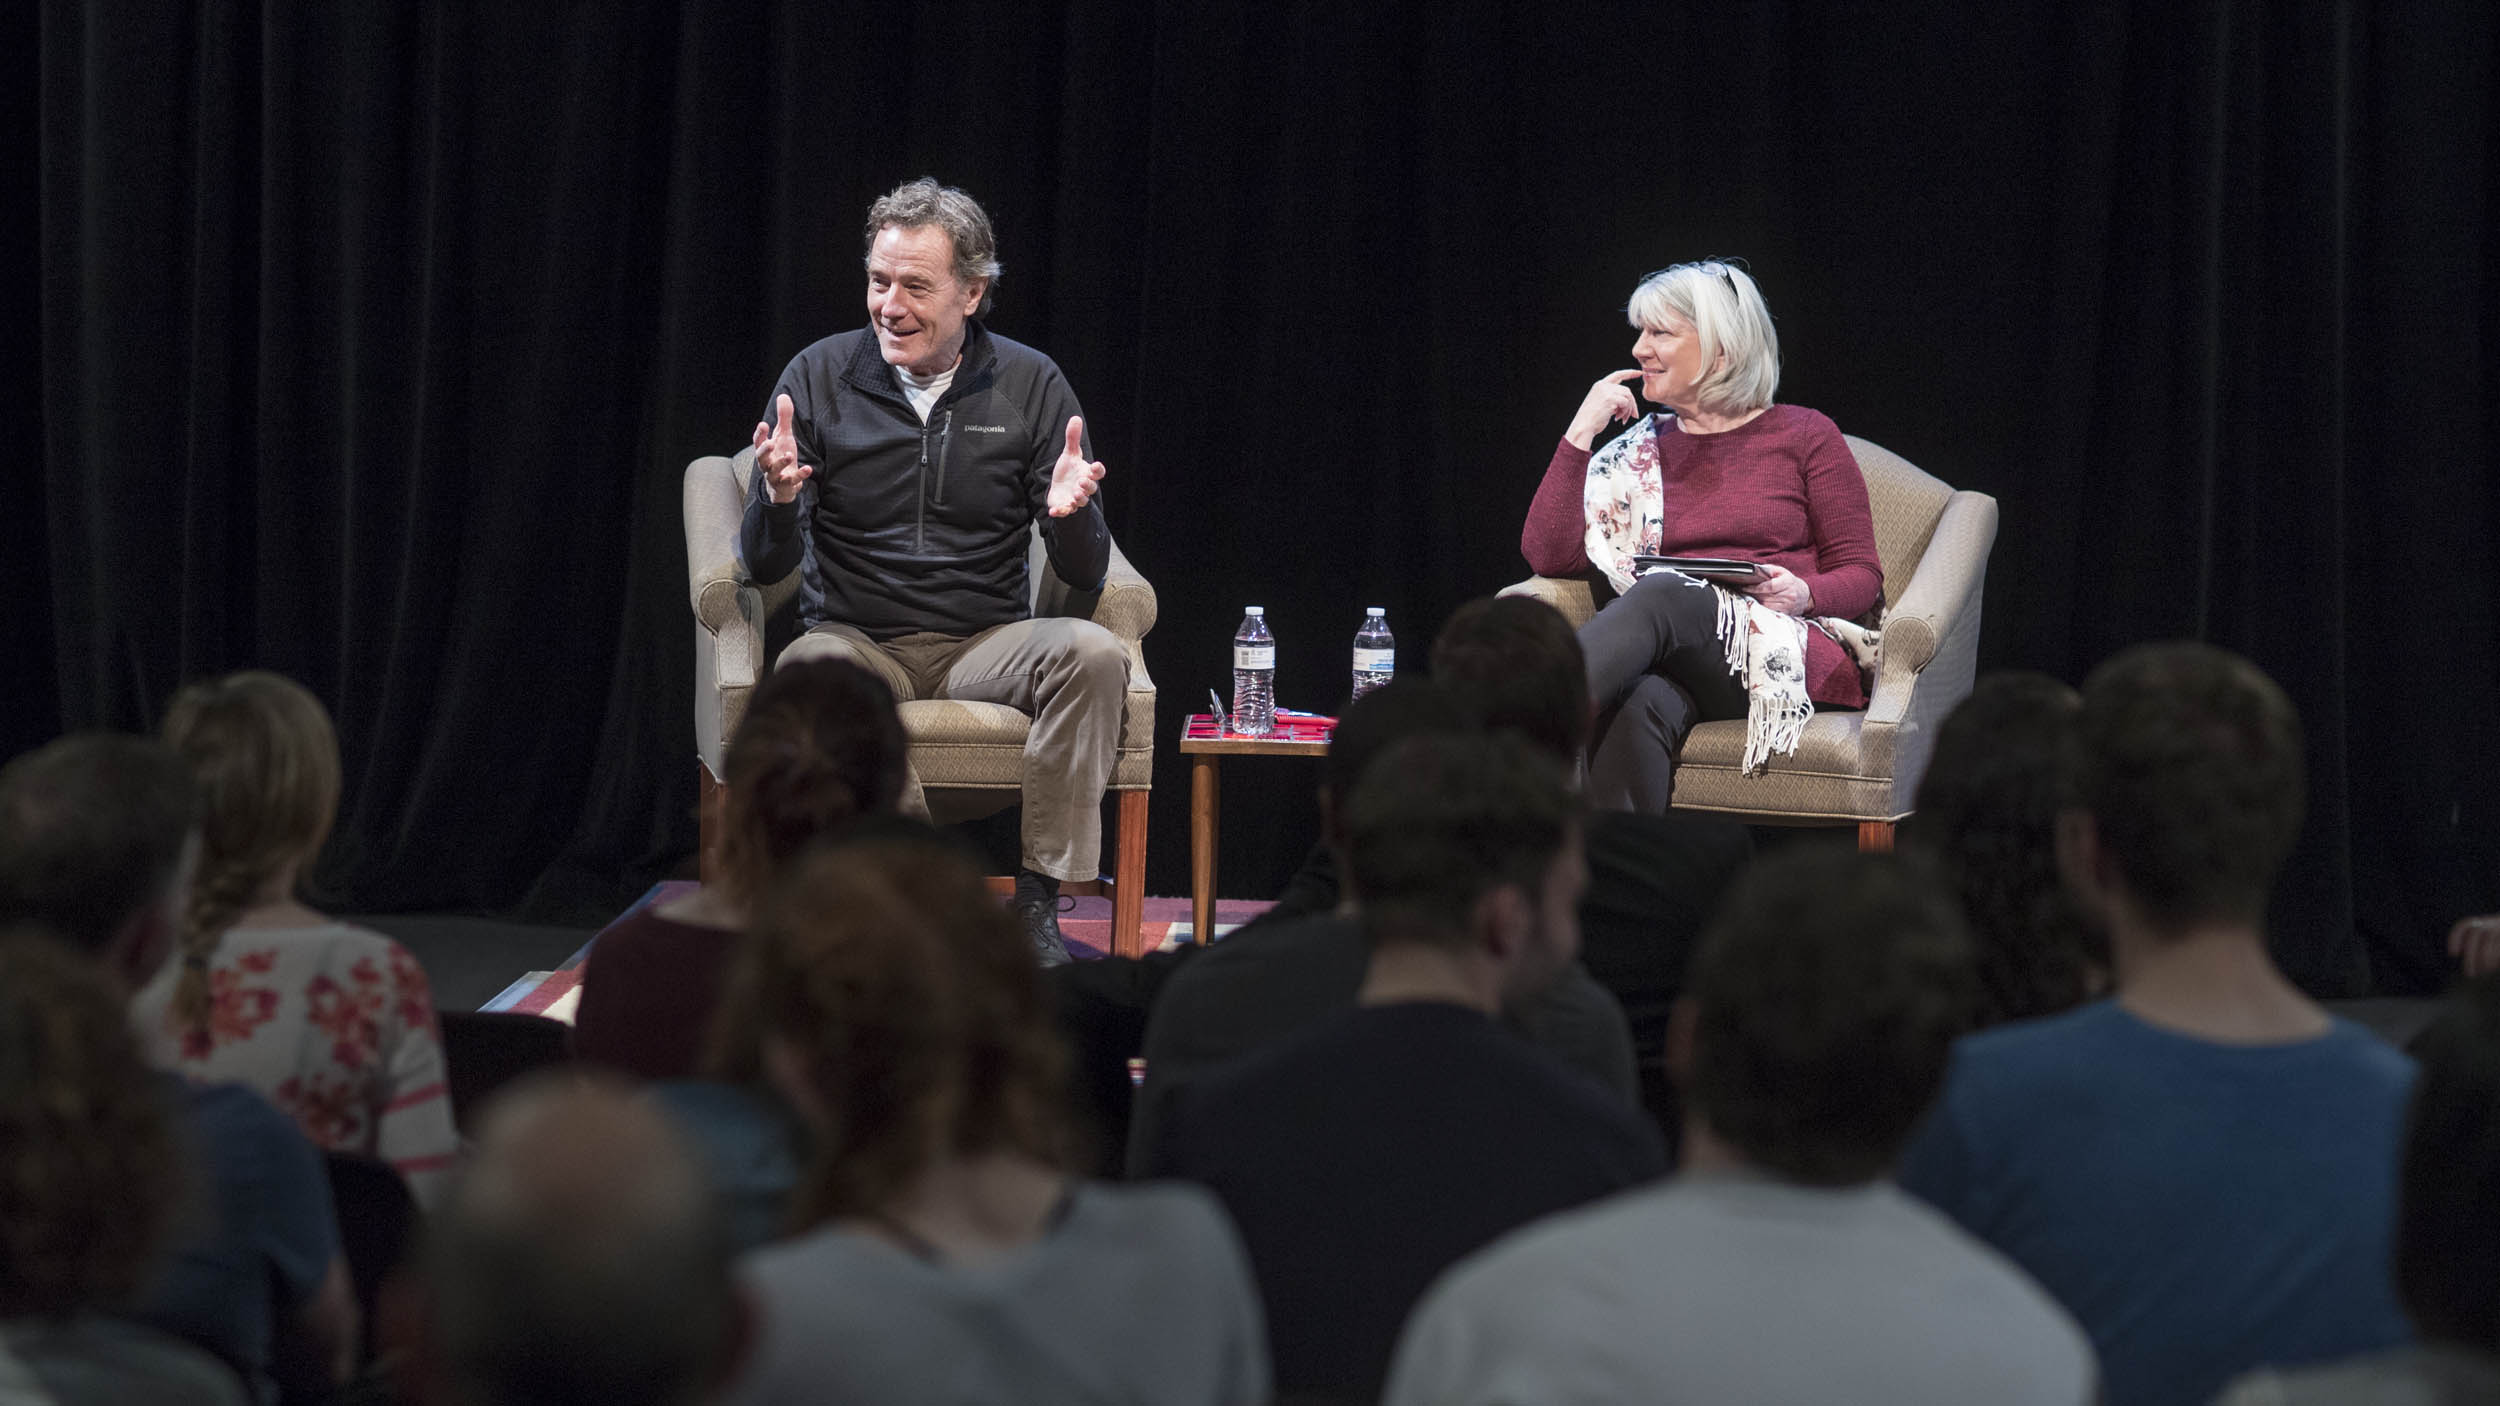 The day before taking the stage at John Paul Jones Arena, Cranston held a more intimate Q&A session for UVA drama students, sharing advice for breaking into the entertainment business. (Photo by Sanjay Suchak, University Communications)